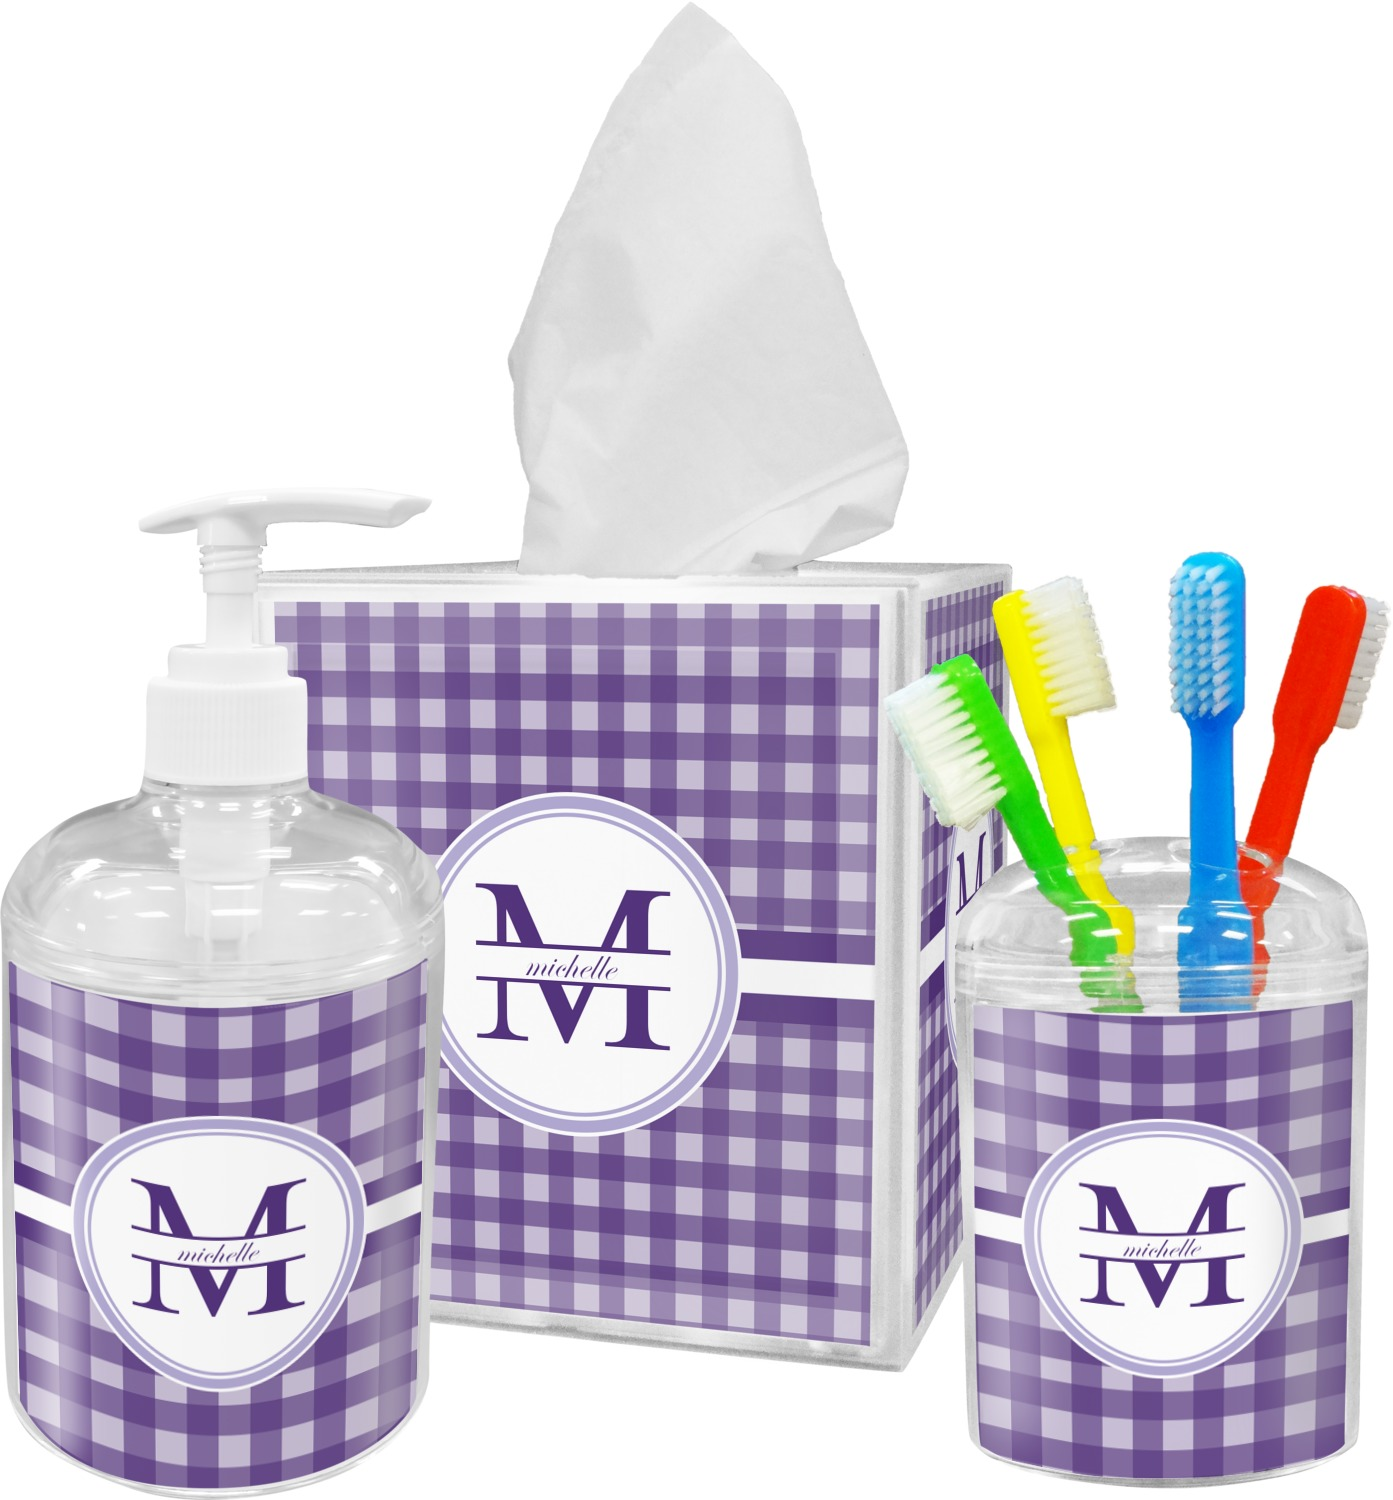 Gingham print bathroom accessories set personalized - Monogrammed bathroom accessories ...